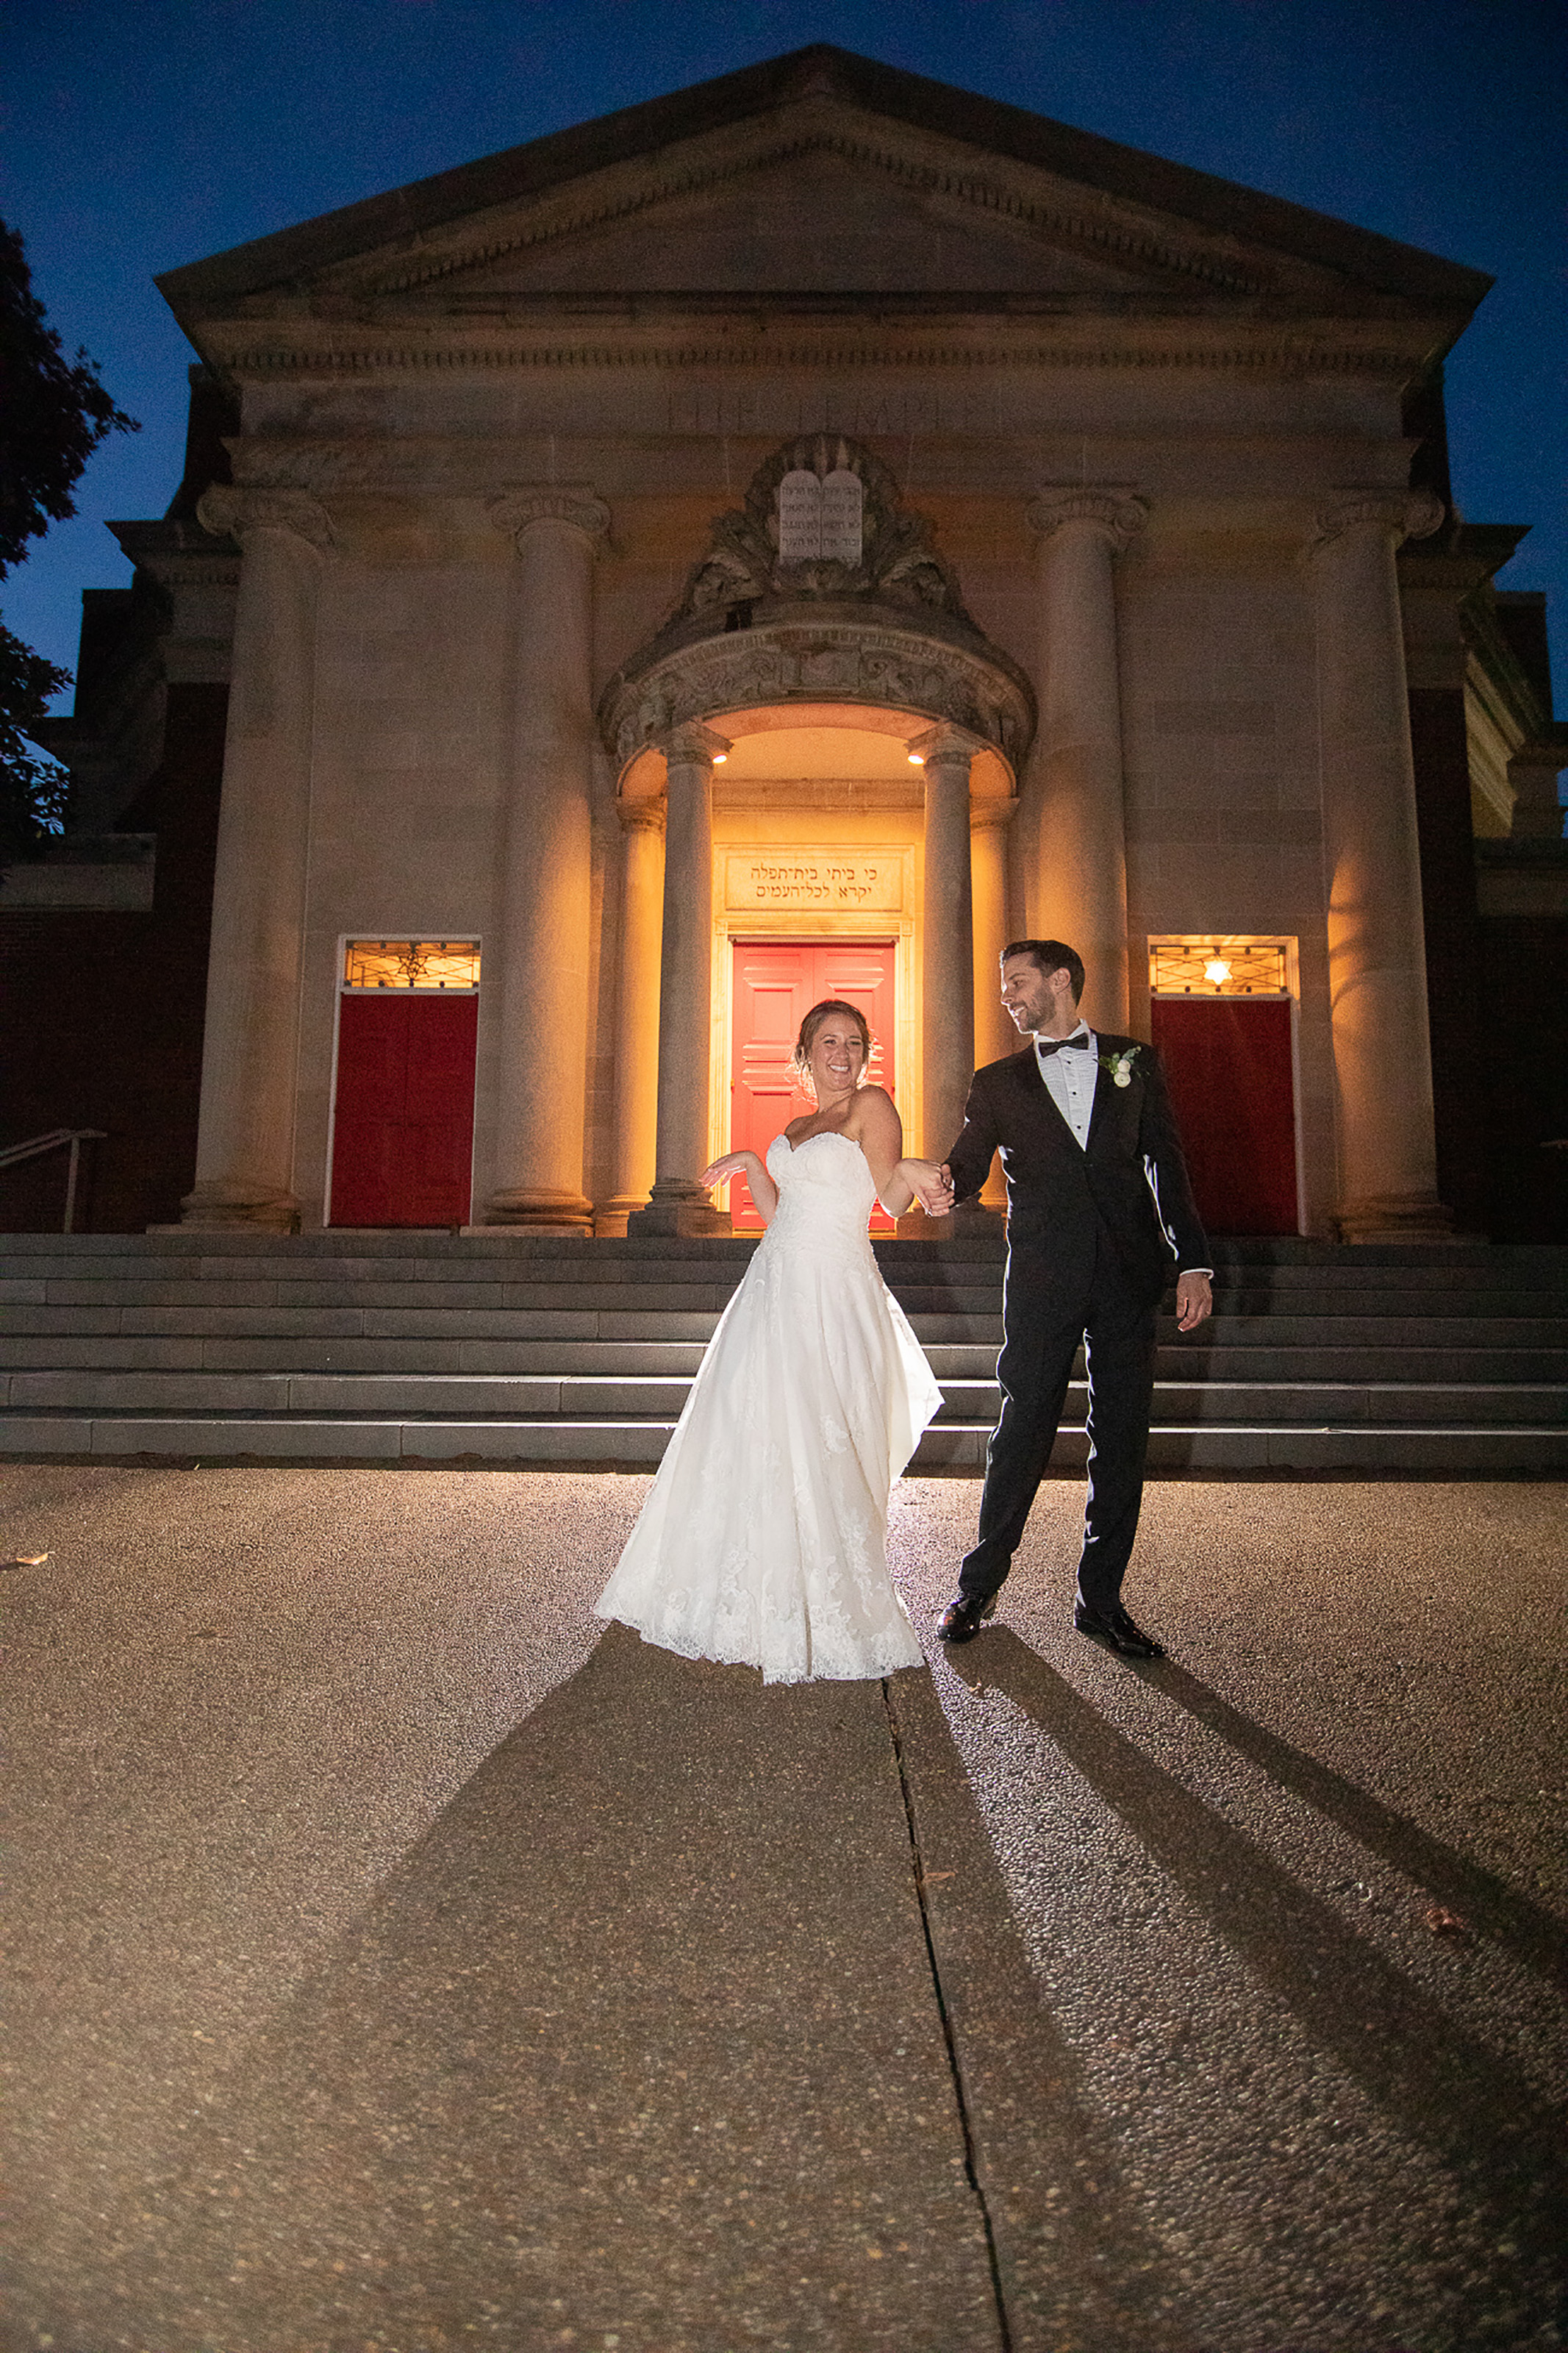 Night Photos at Blue Hour - Photography by the Atlanta Wedding photographers at AtlantaArtisticWeddings